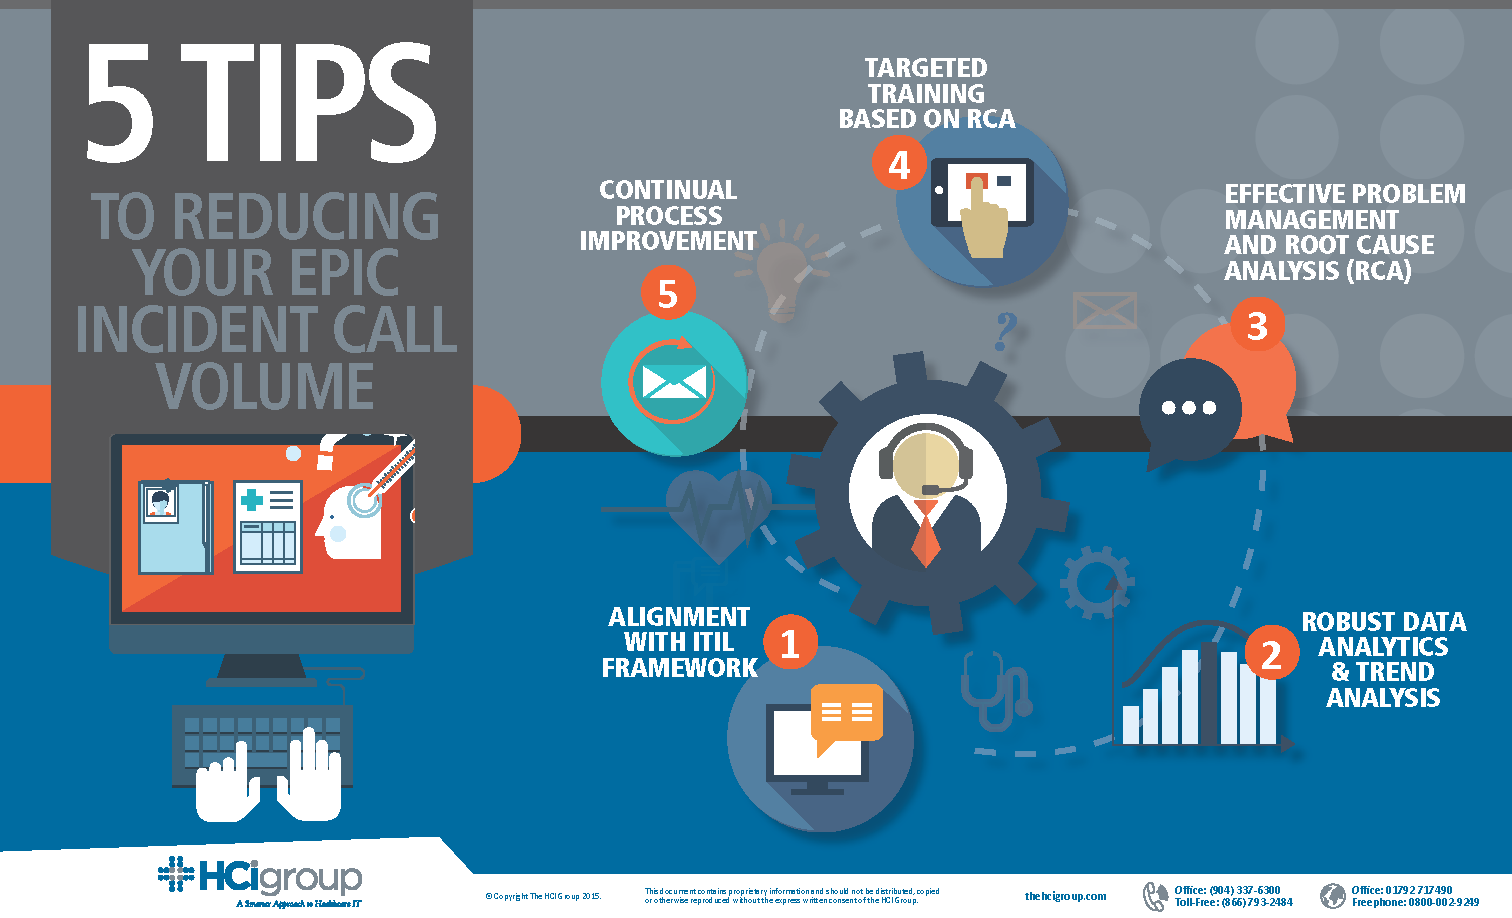 The HCI Group | 5 Tips to Reducing Epic Incident Call Volumes Infographic